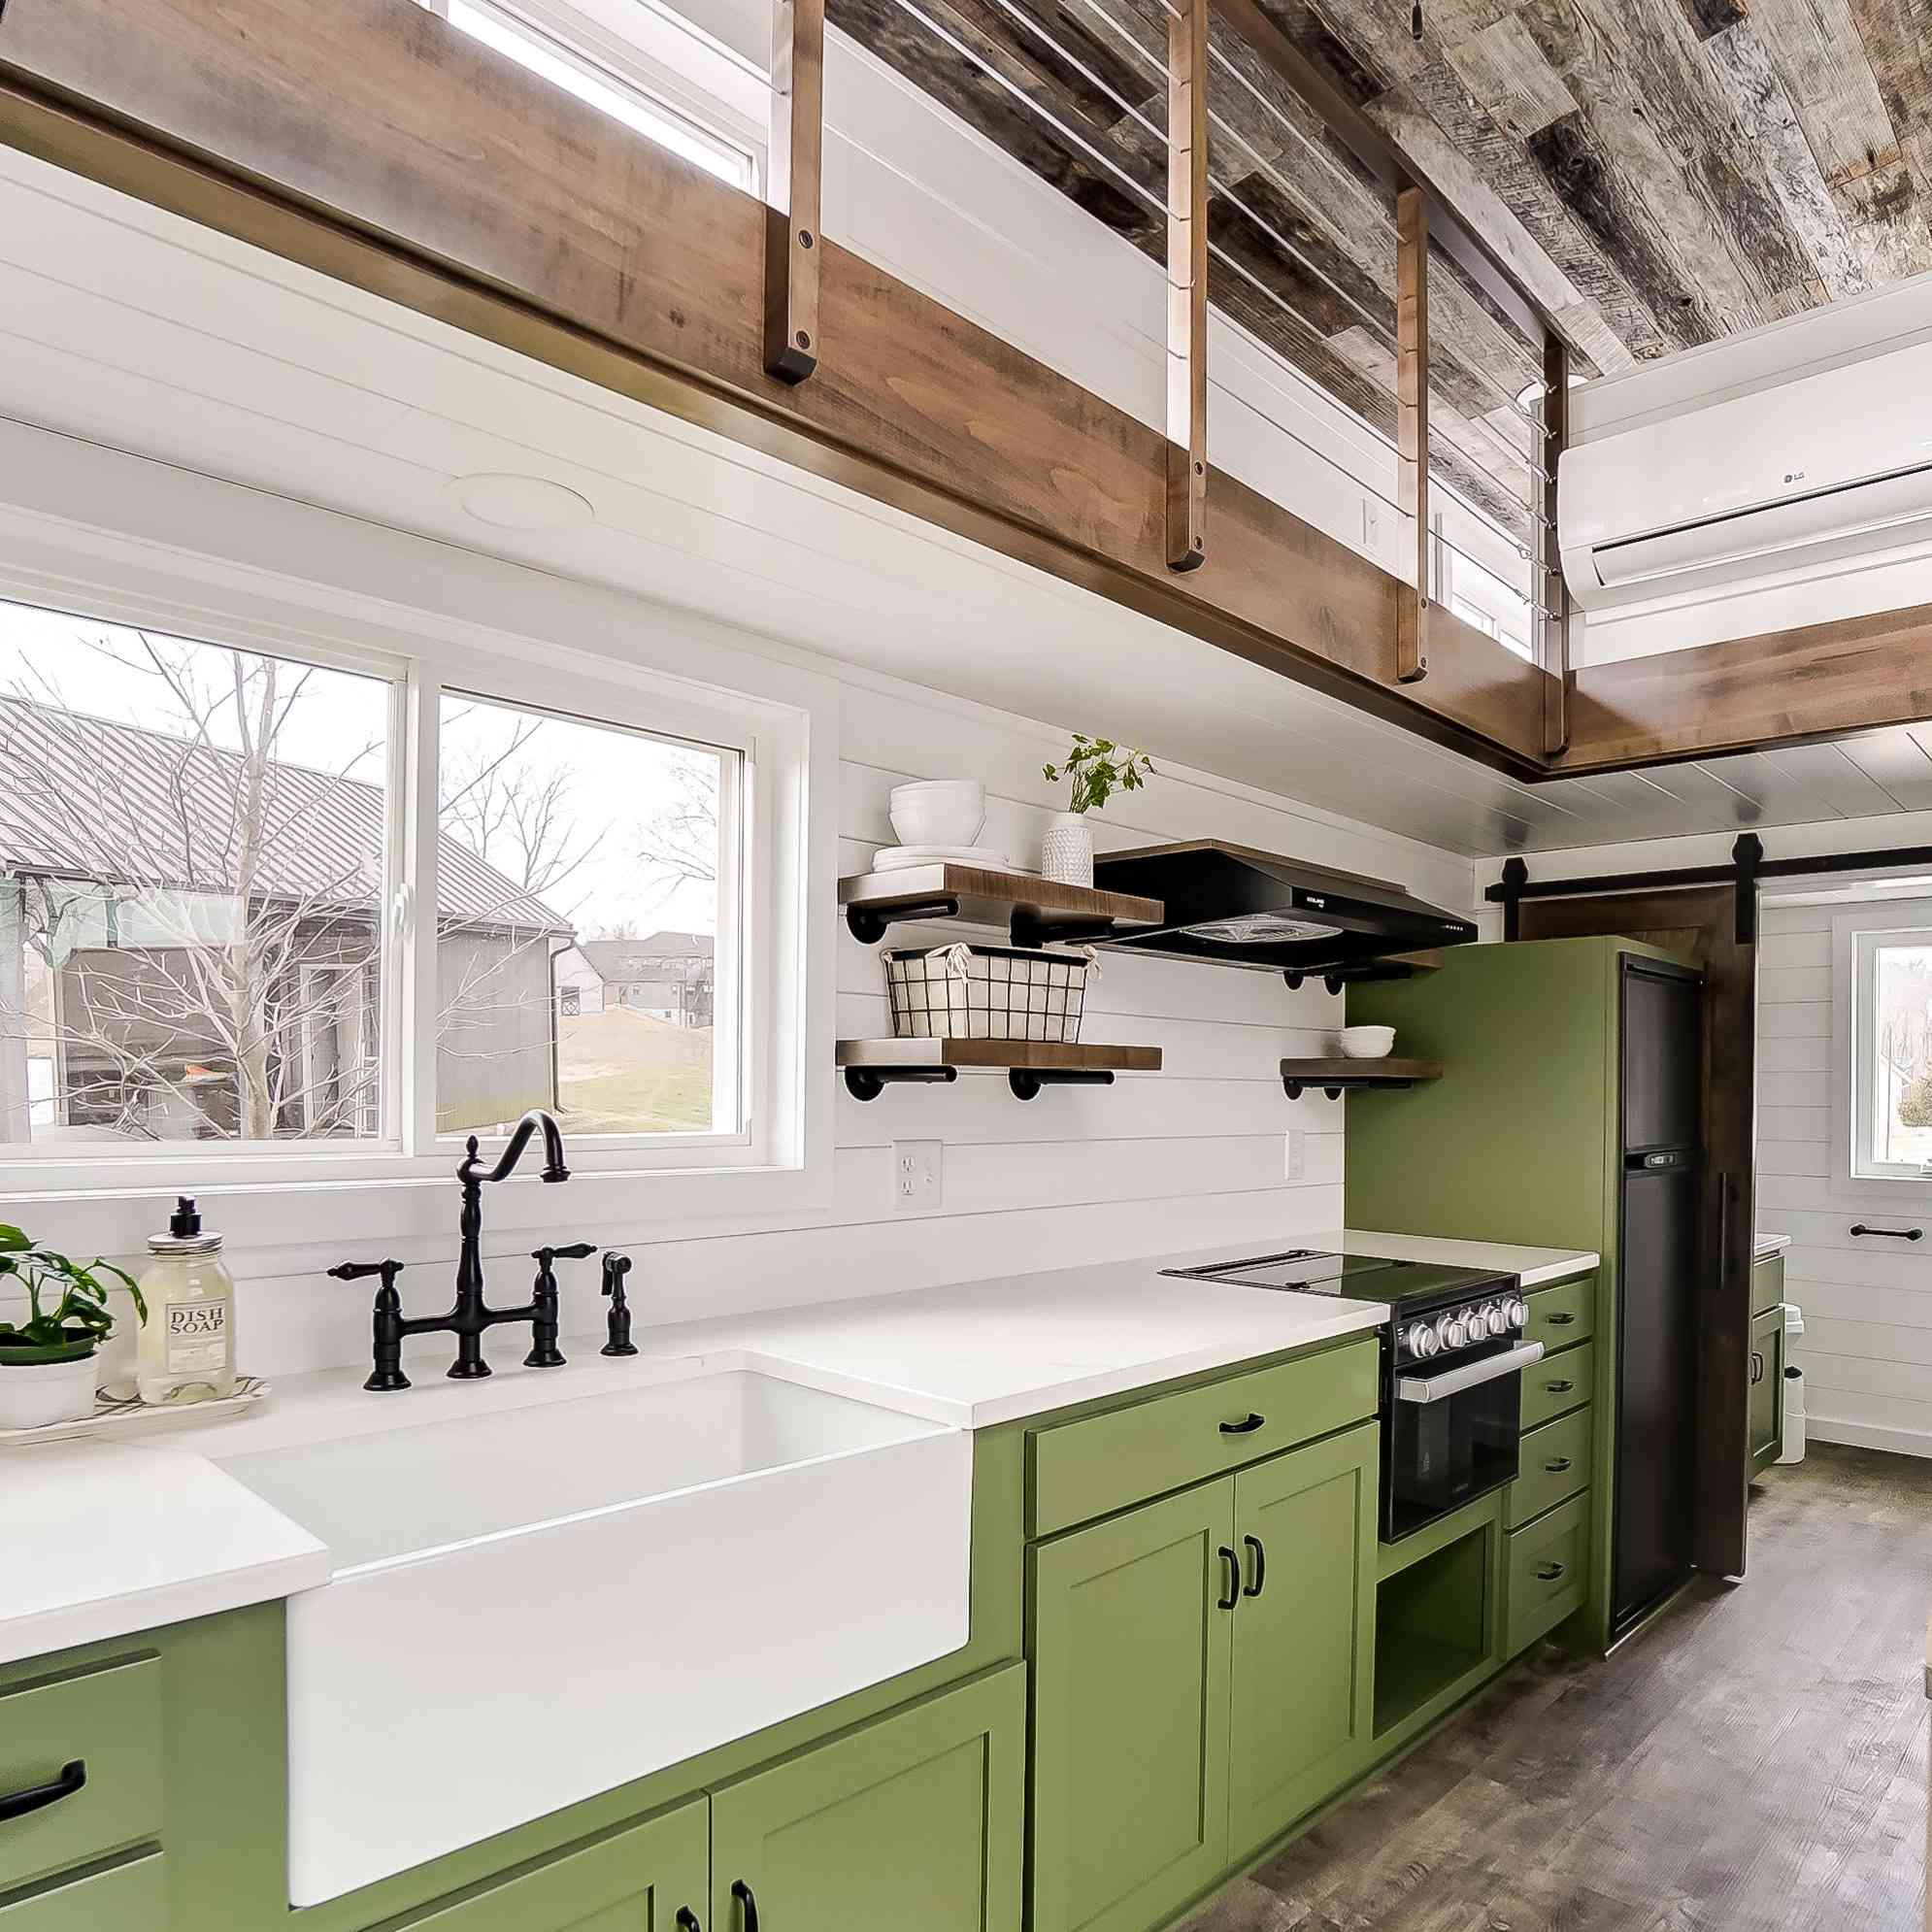 tiny home kitchen with avocado green cabinets